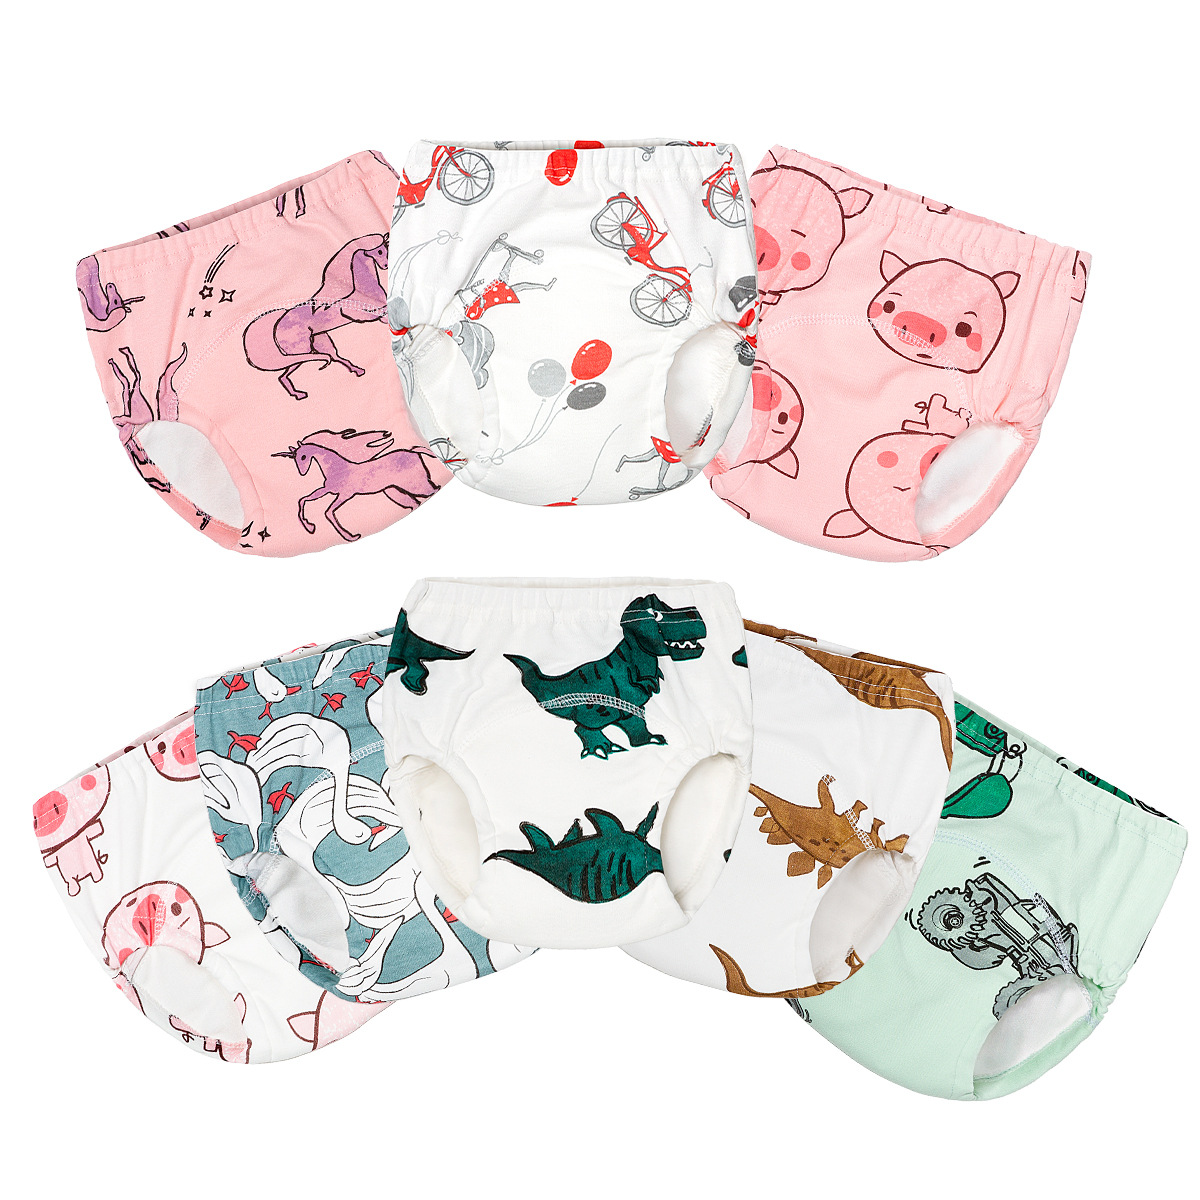 Washable Eco-Friendly Cloth Diaper Adjustable Nappy Reusable Cloth Diapers Fit 0-2years 6-25kg Baby Training Pants Underwear